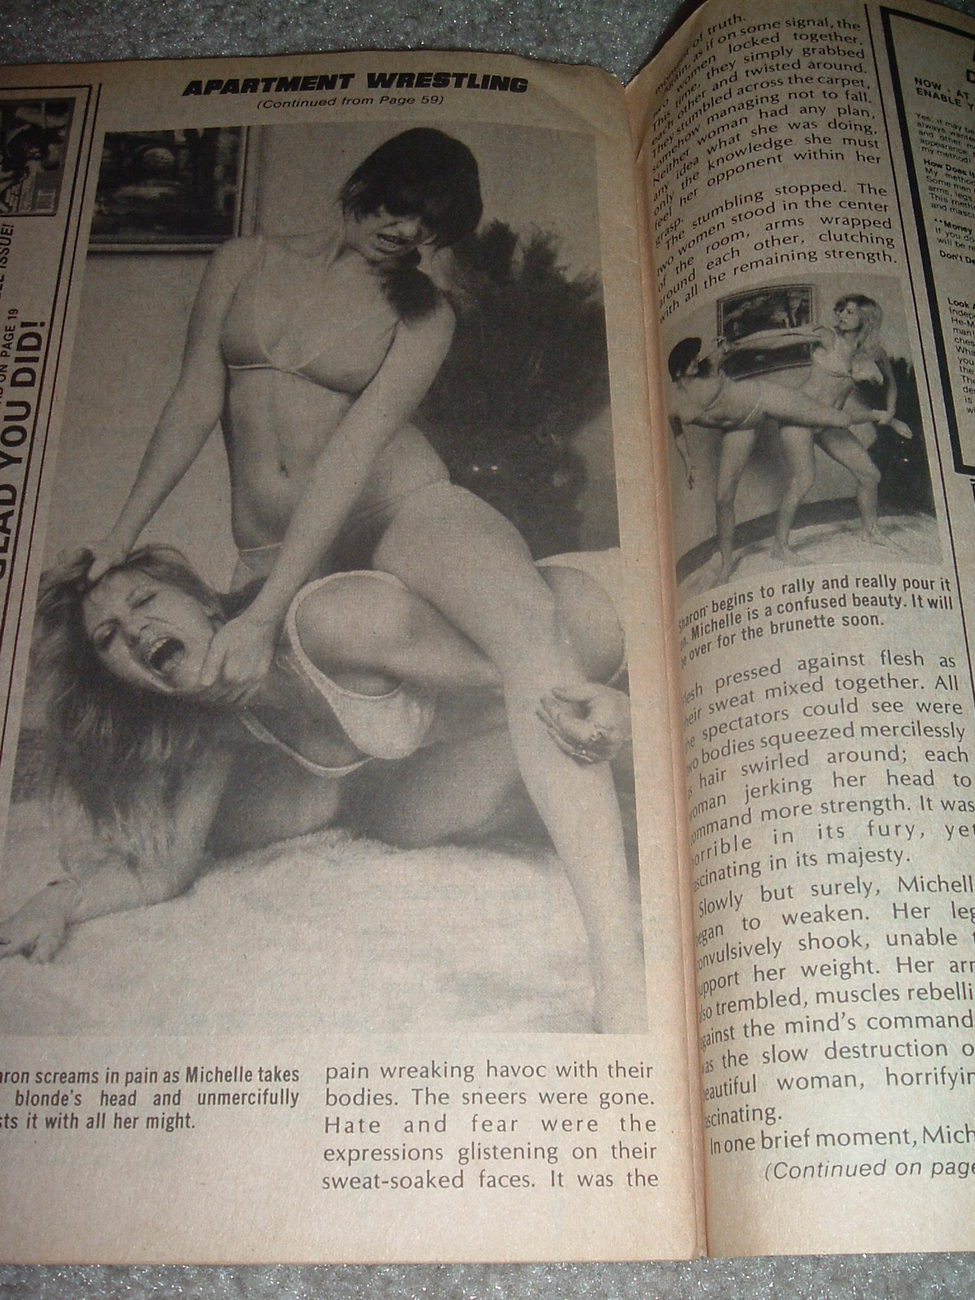 Apartment Wrestling Girls http://www.bonanza.com/listings/Sports-Review-Wrestling-November-1978-Apartment-Women-WWE/38189829